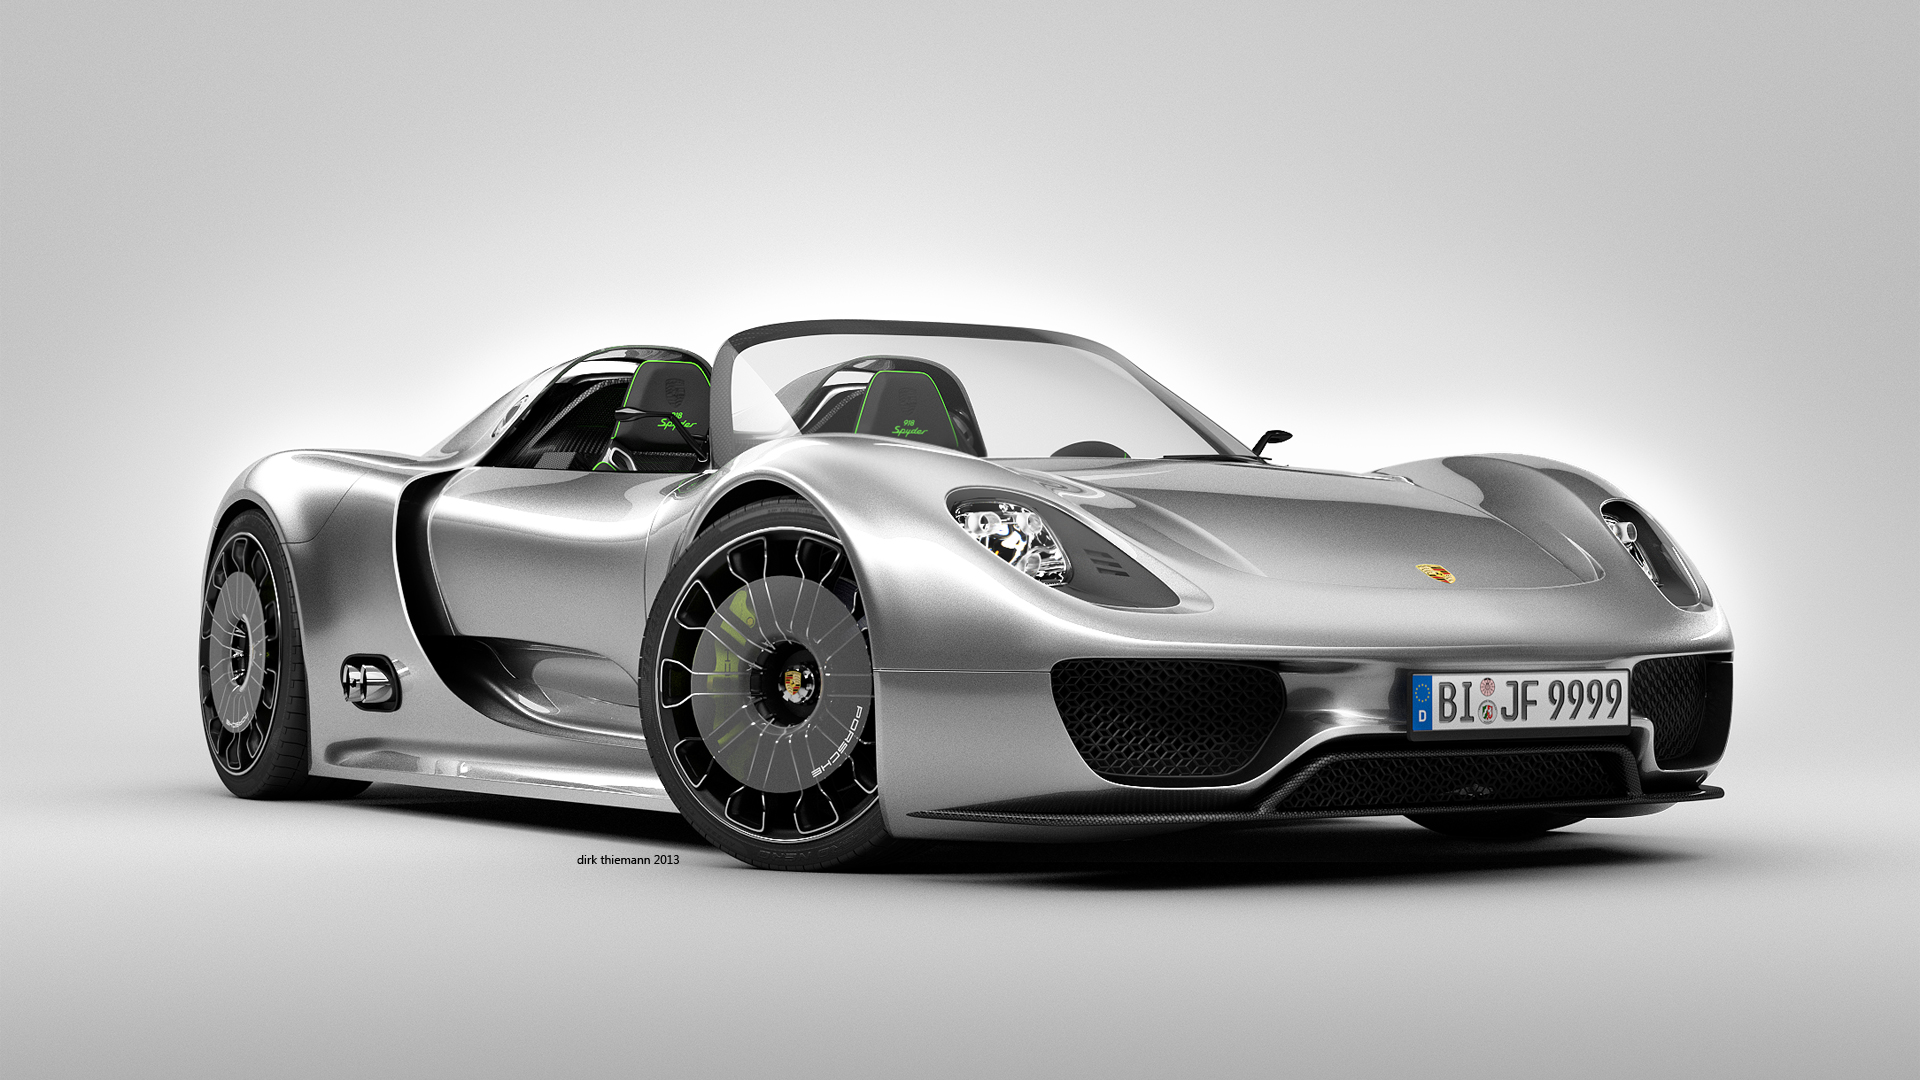 porsche 918 spyder by graf ics on deviantart. Black Bedroom Furniture Sets. Home Design Ideas